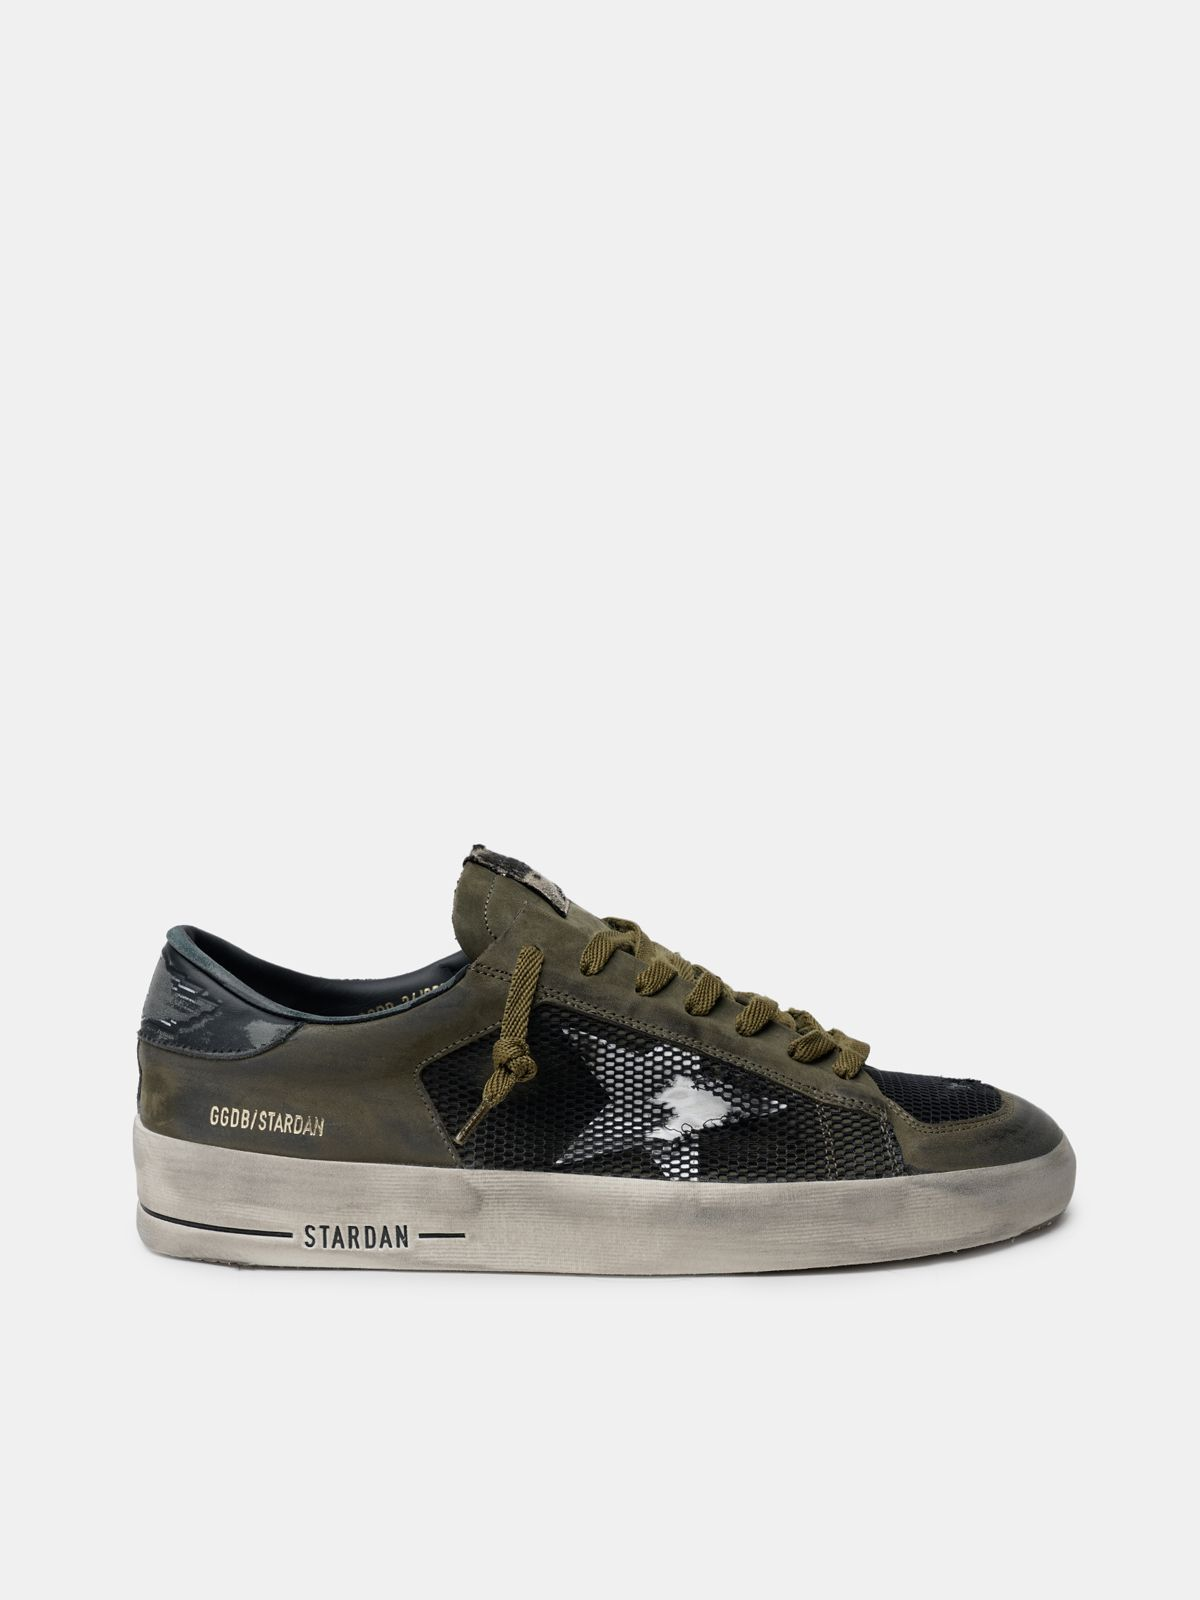 Golden Goose - Military green and black Stardan sneakers in